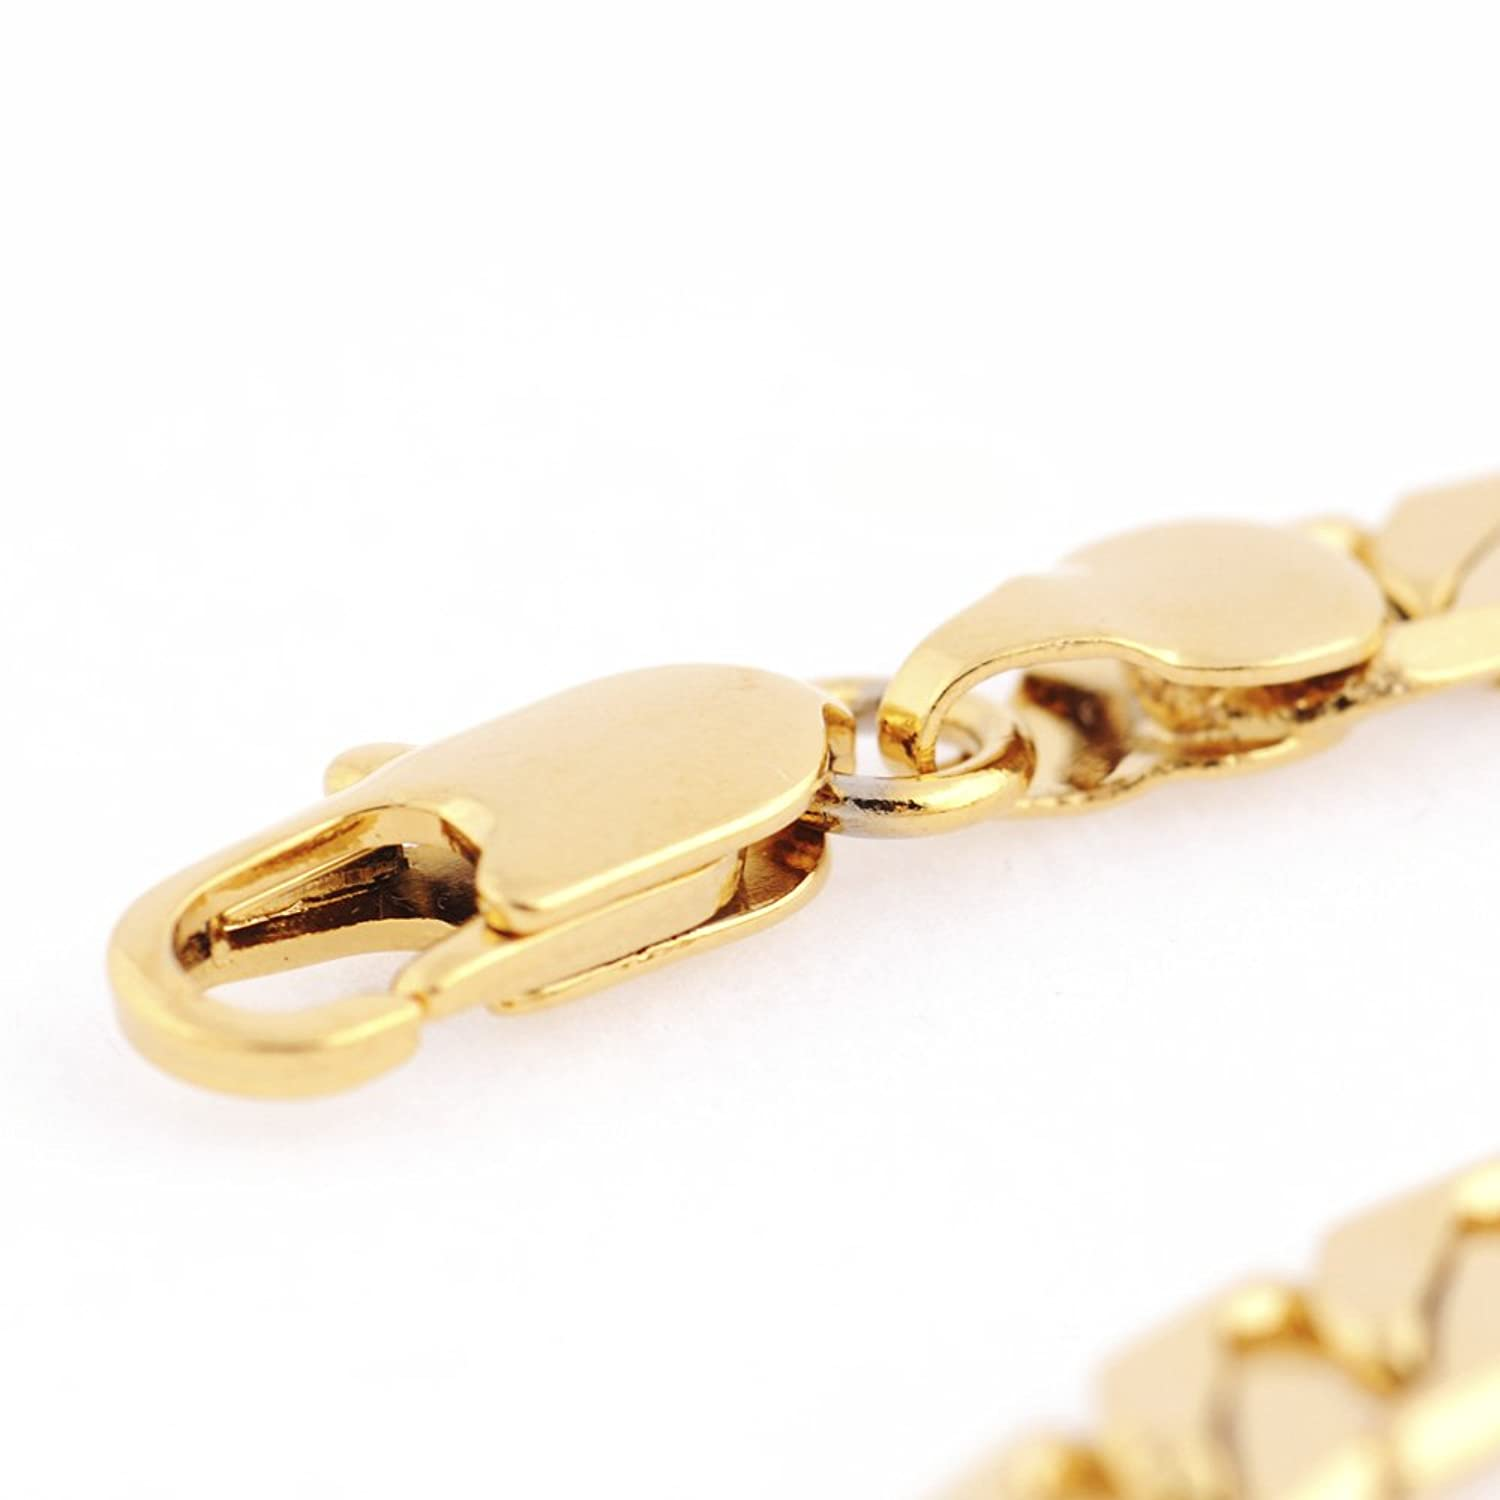 Followmoon Cool 18K Gold Plated Figaro Link Necklace Chain (18 ...